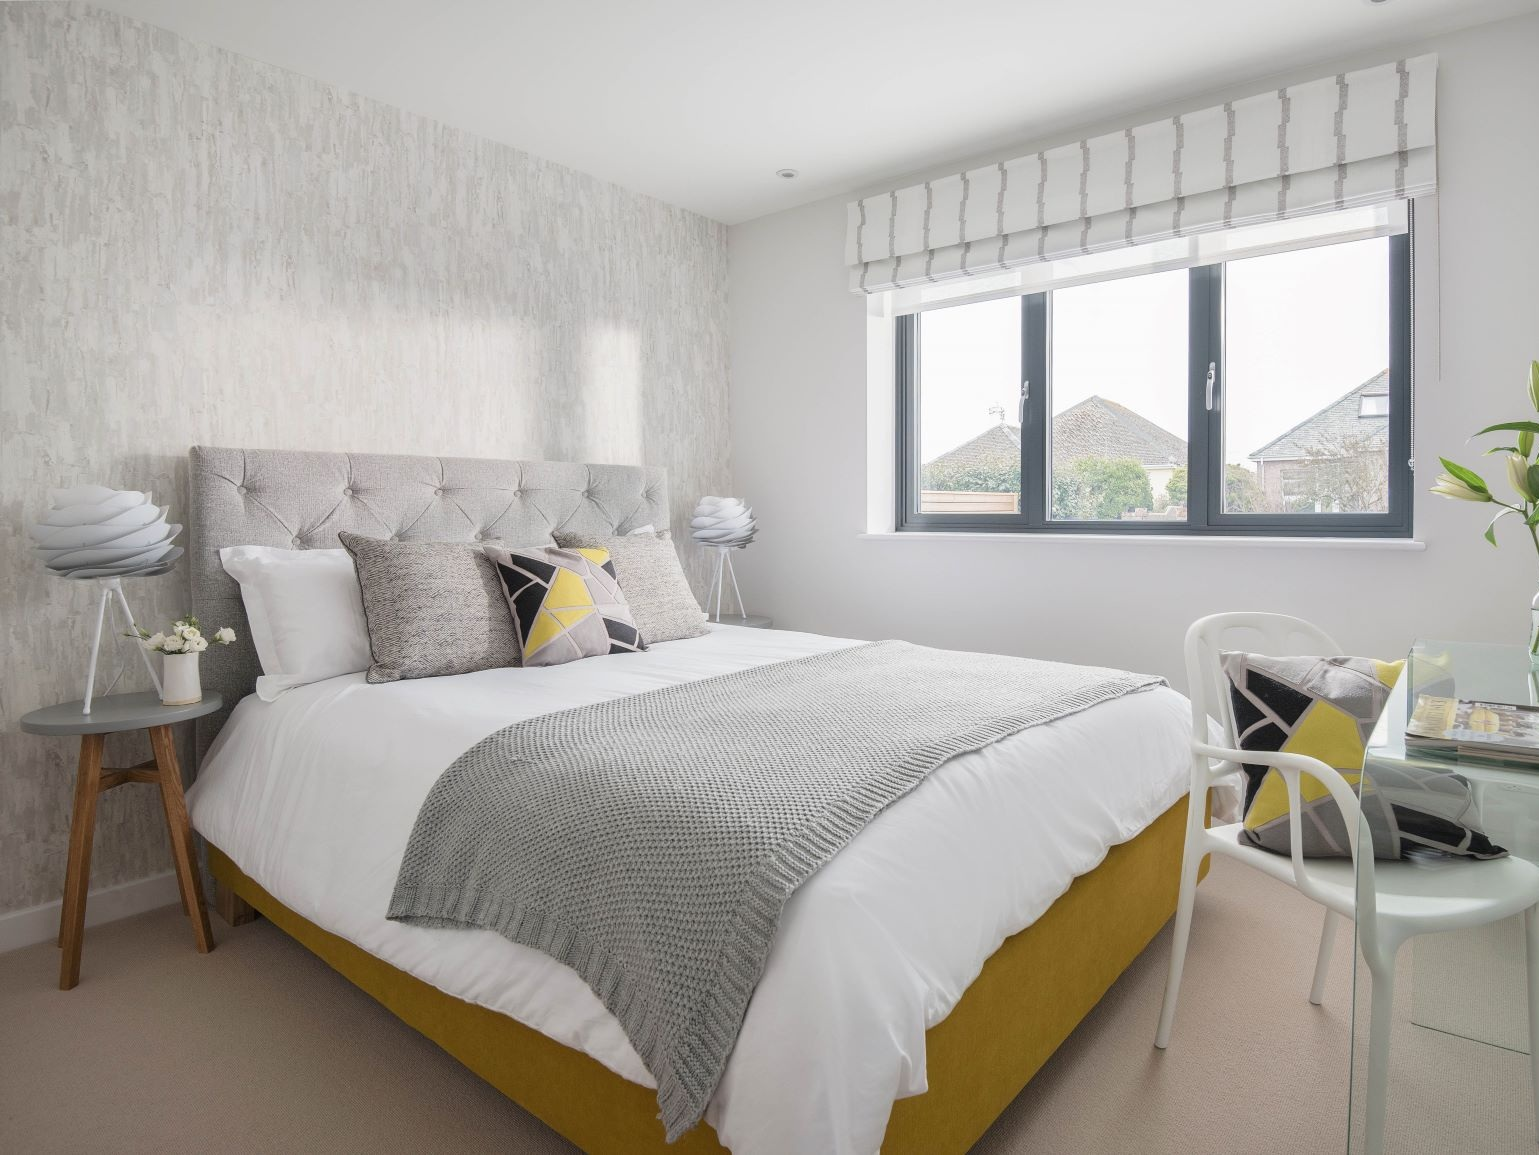 Free Single Room Design Consultation - Do you have the room dimensions, photos and plans of your property? If so you can arrange a free 60 minute pre-booked appointment with one of our interior stylists. We can help you create a scheme for a single room or your entire property, consisting of everything from furniture and furnishing accessories to flooring and window dressings. We can provide you with a completely costed shopping list of all the included elements which we can source and supply for you.